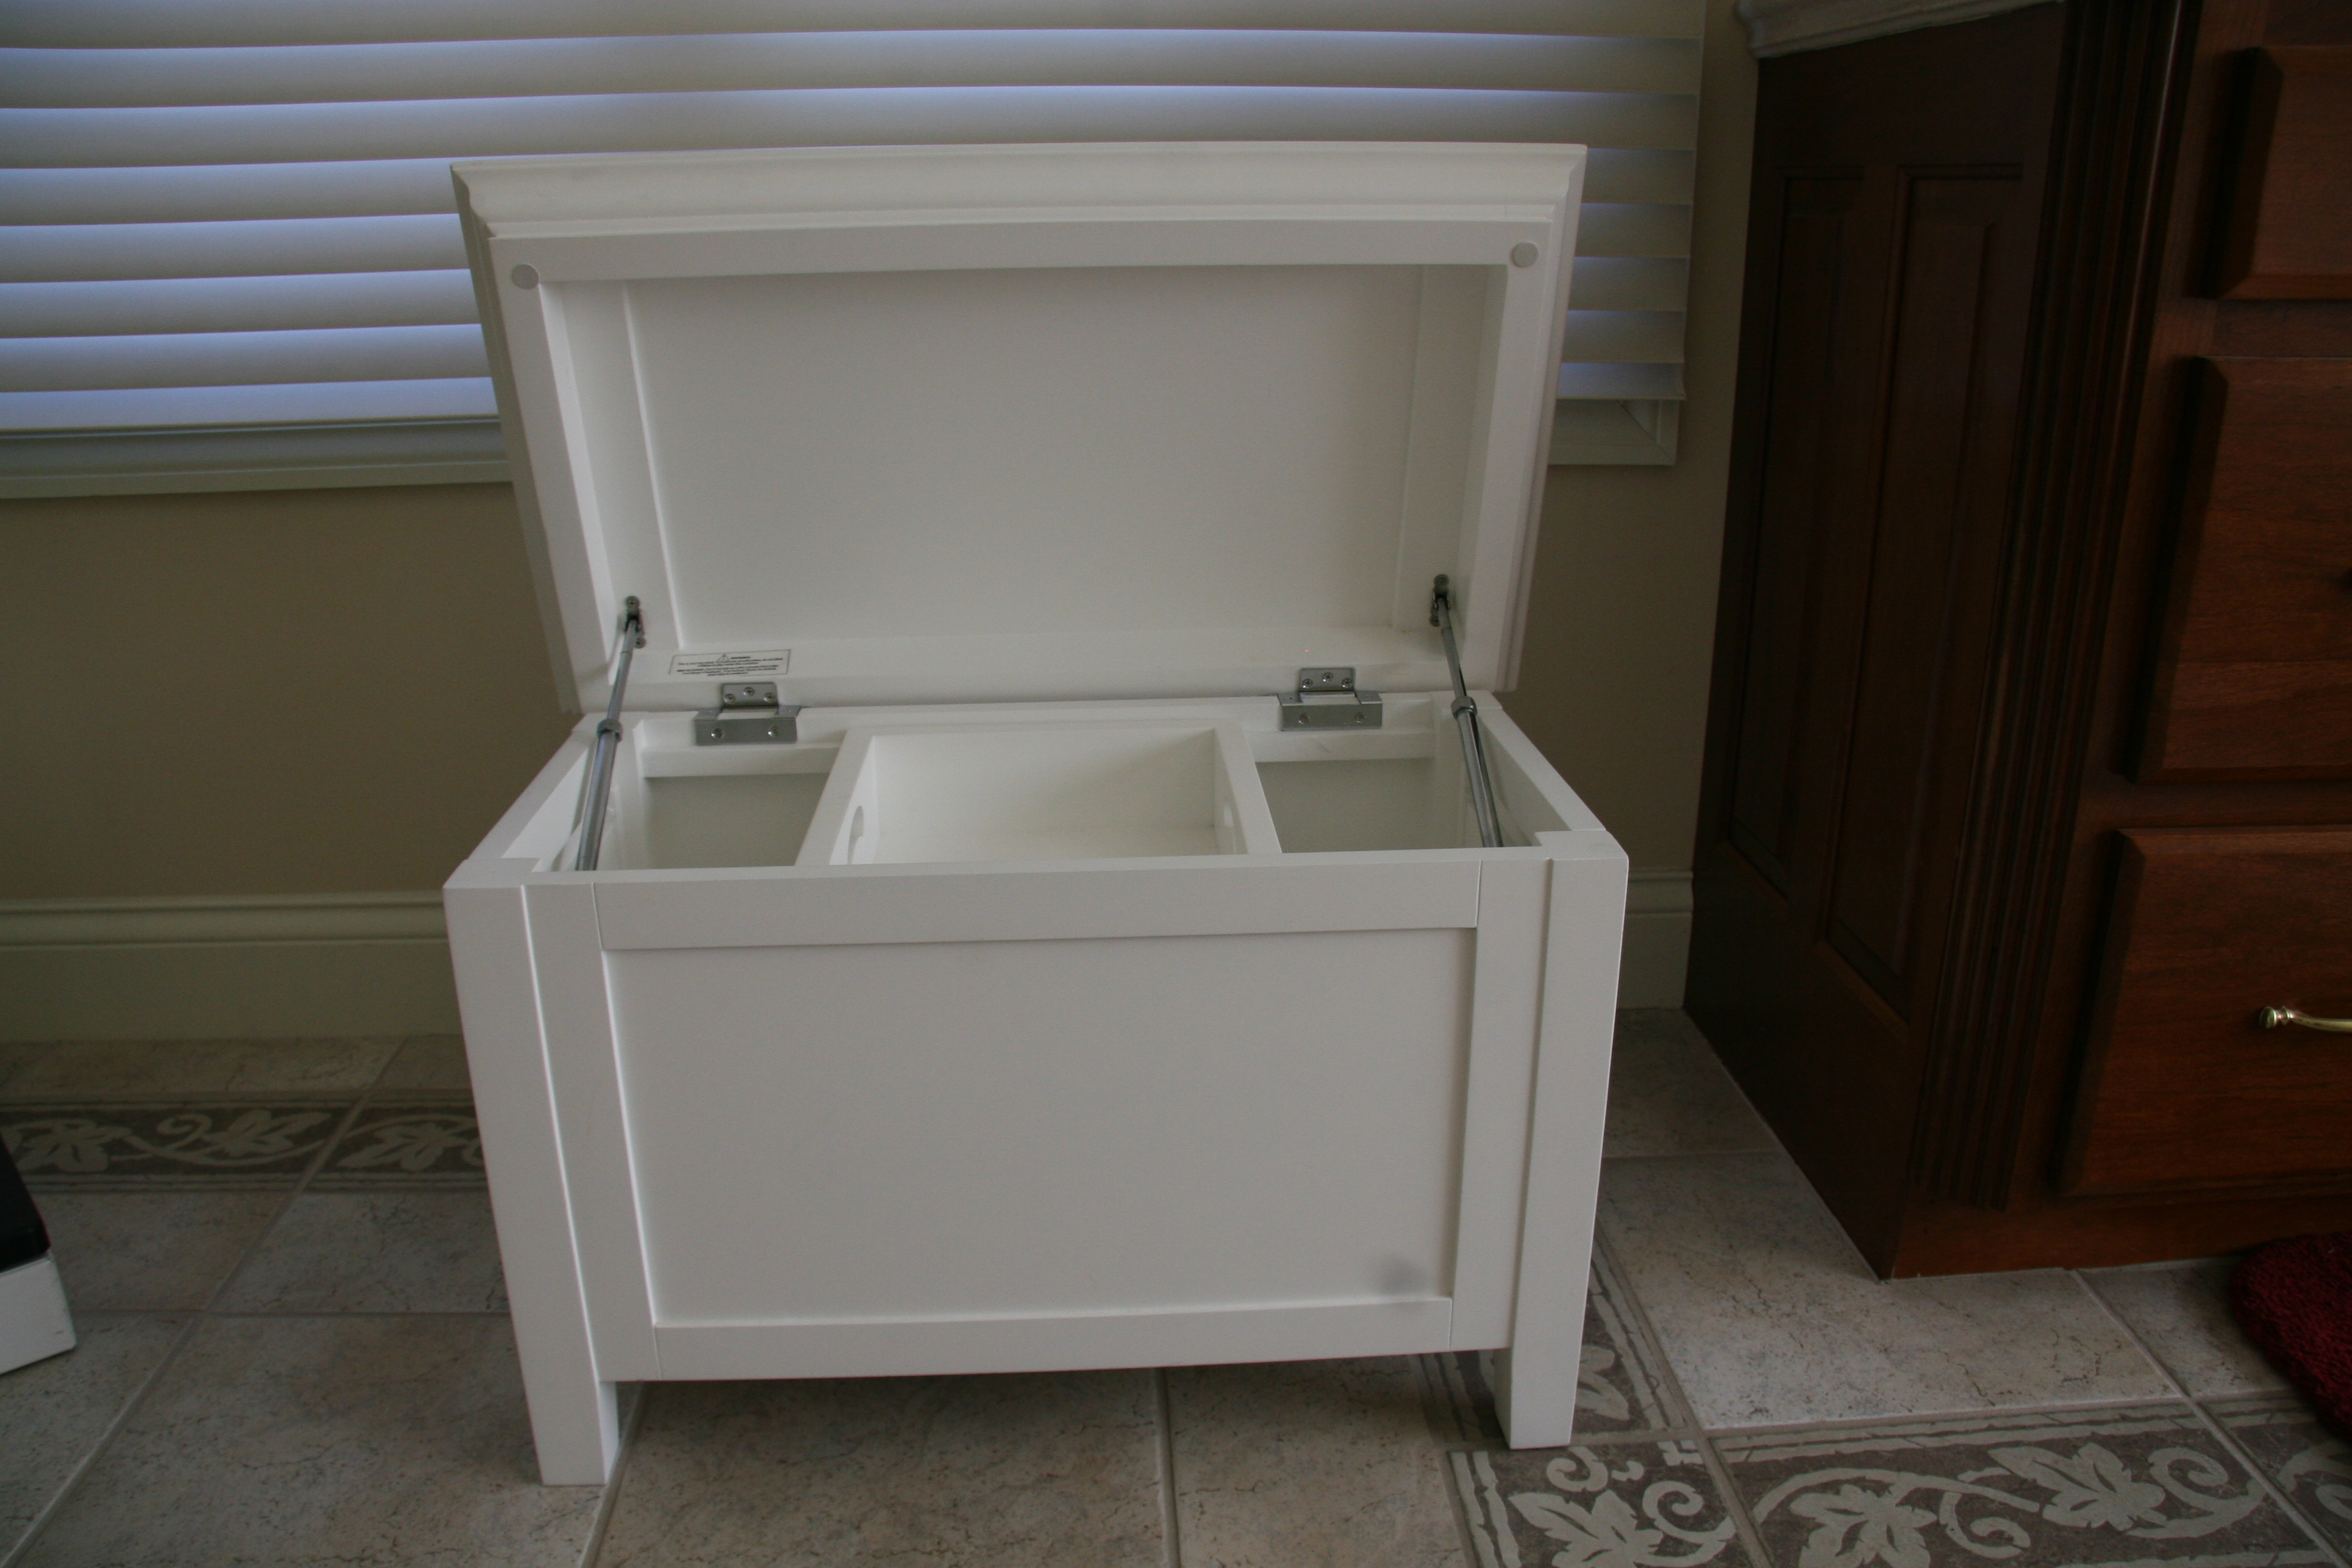 Bathroom Bench Storage Ideas intended for proportions 3504 X 2336